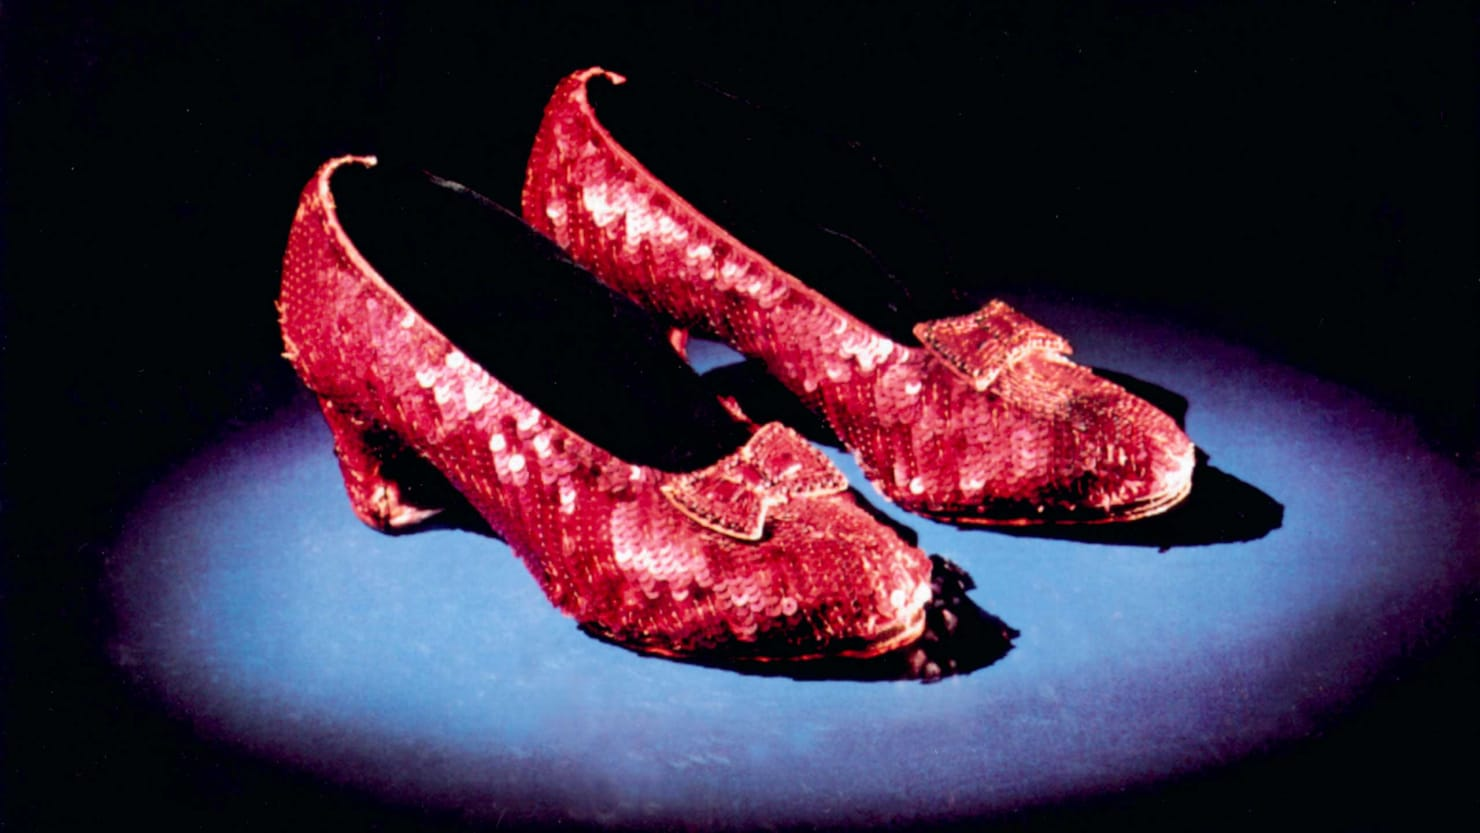 Dorothy S Ruby Slippers From The Wizard Of Oz Finally Return And It No Joke For Fbi